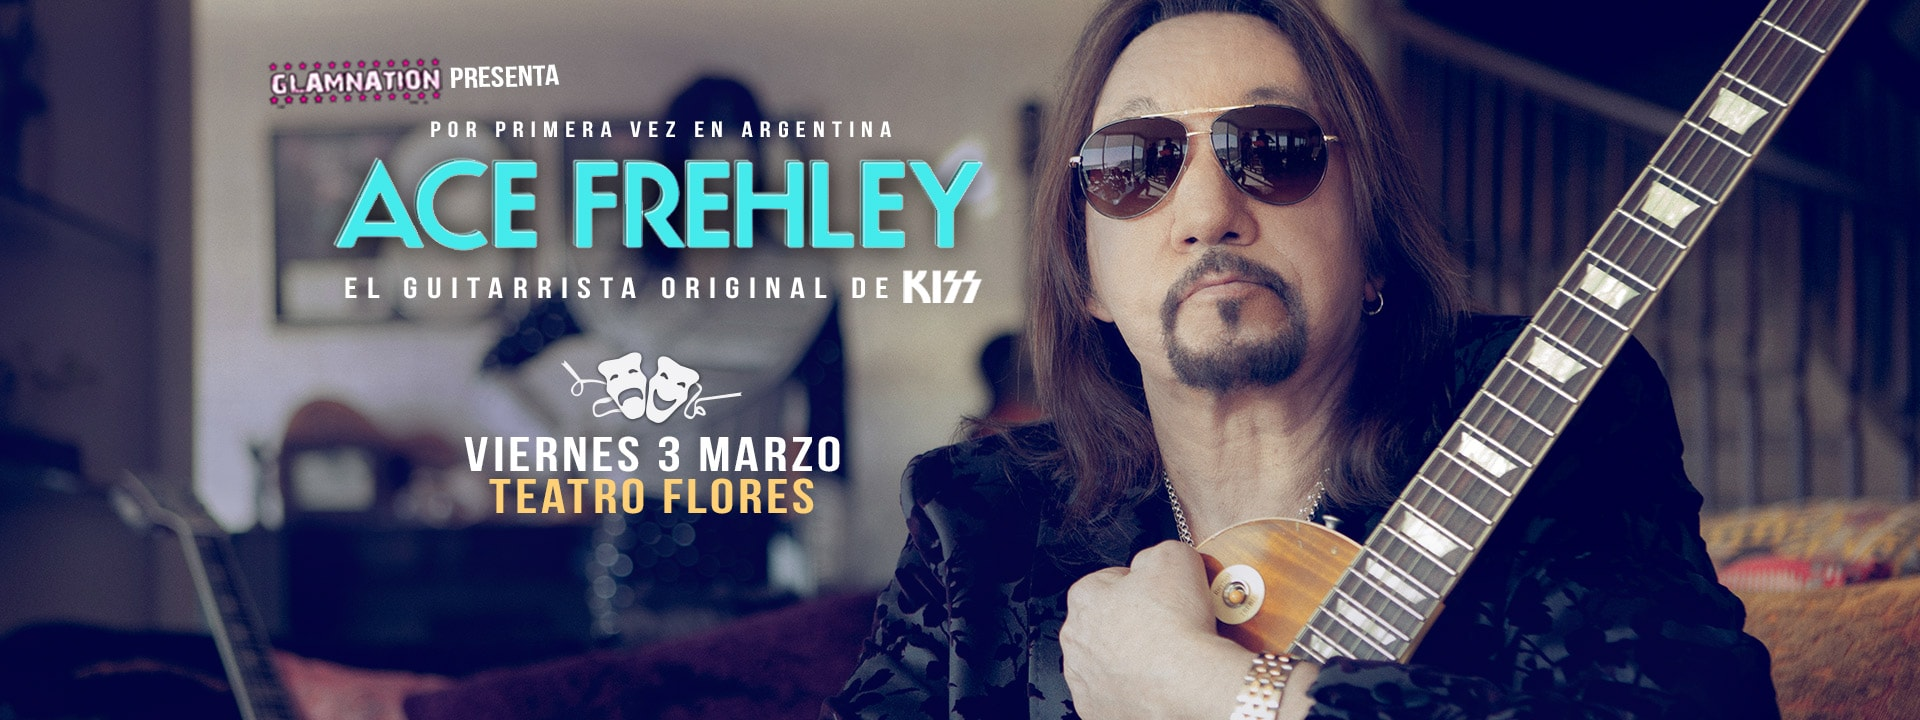 1483111117219-test-pos-ace-frehley-flores-1920X720